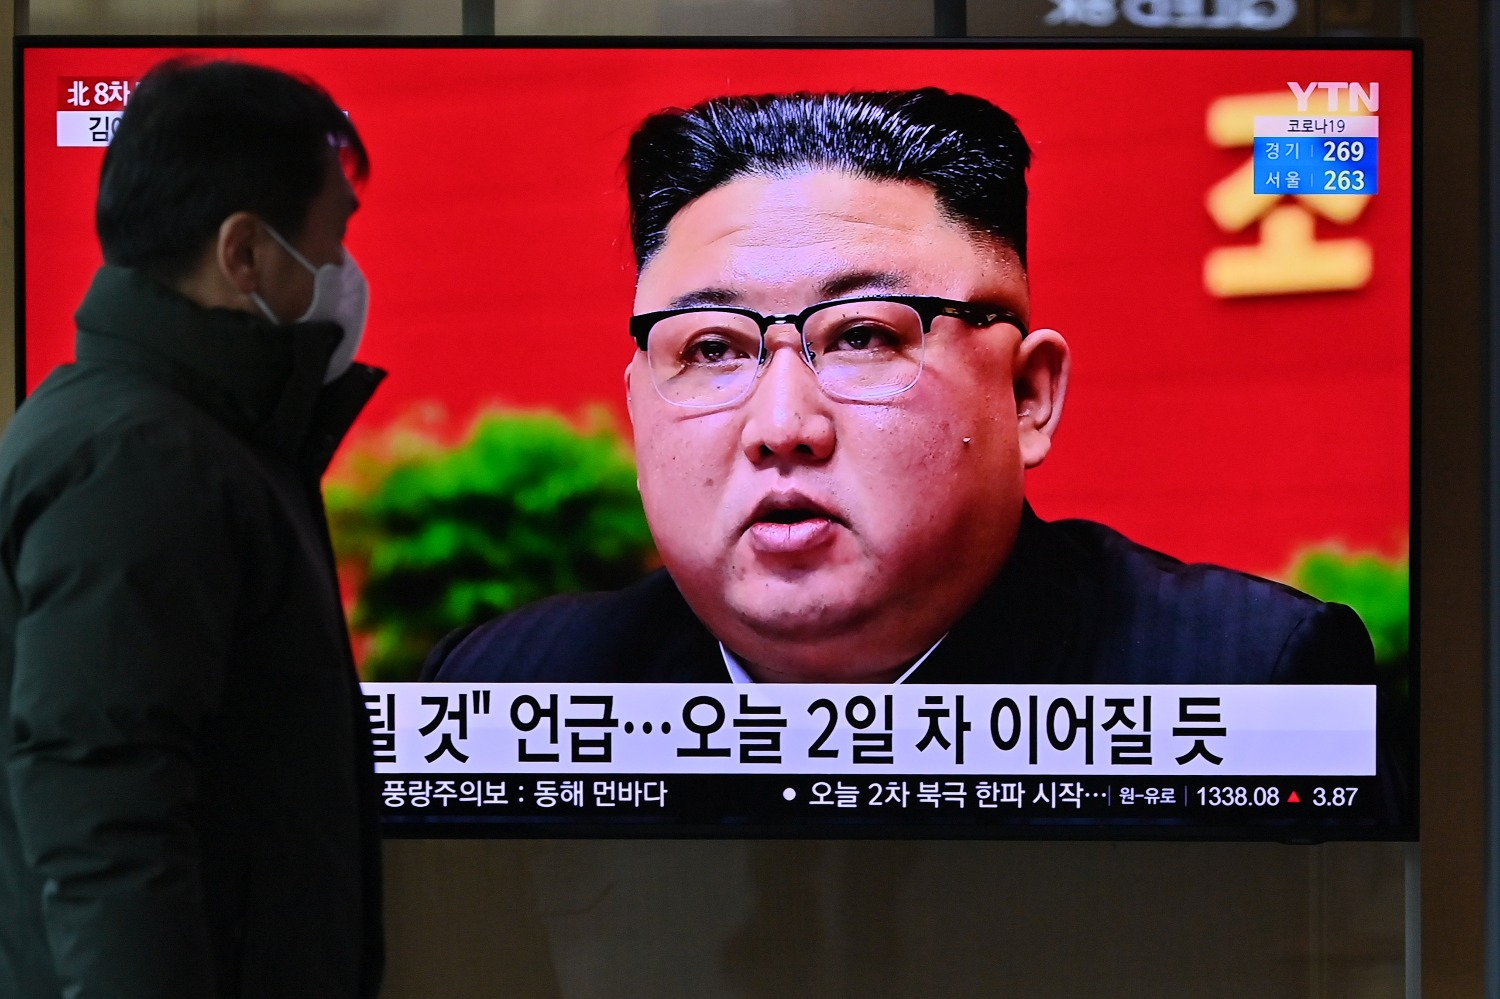 A man watches a television screen showing news footage of North Korean leader Kim Jong Un attending the 8th Congress of the ruling Workers' Party, held in Pyongyang, at a railway station in Seoul on Jan. 6.